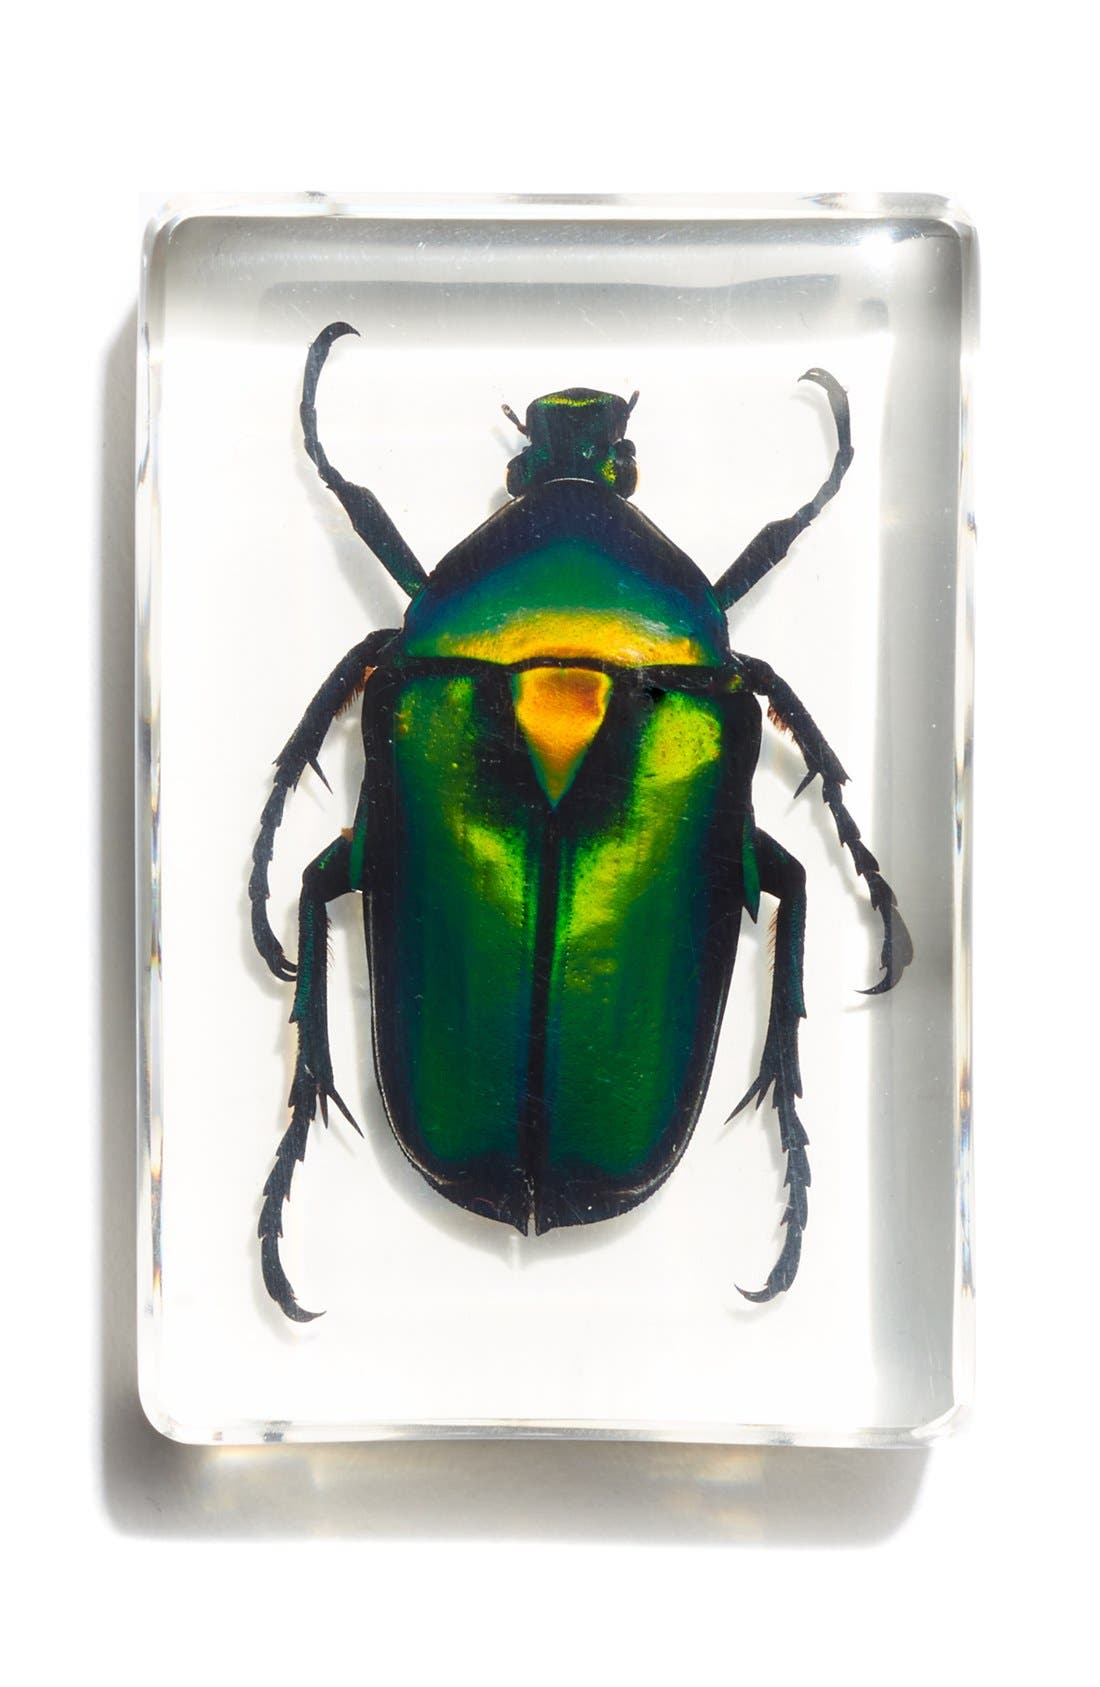 Chafer Beetle in Resin, Main, color, 960